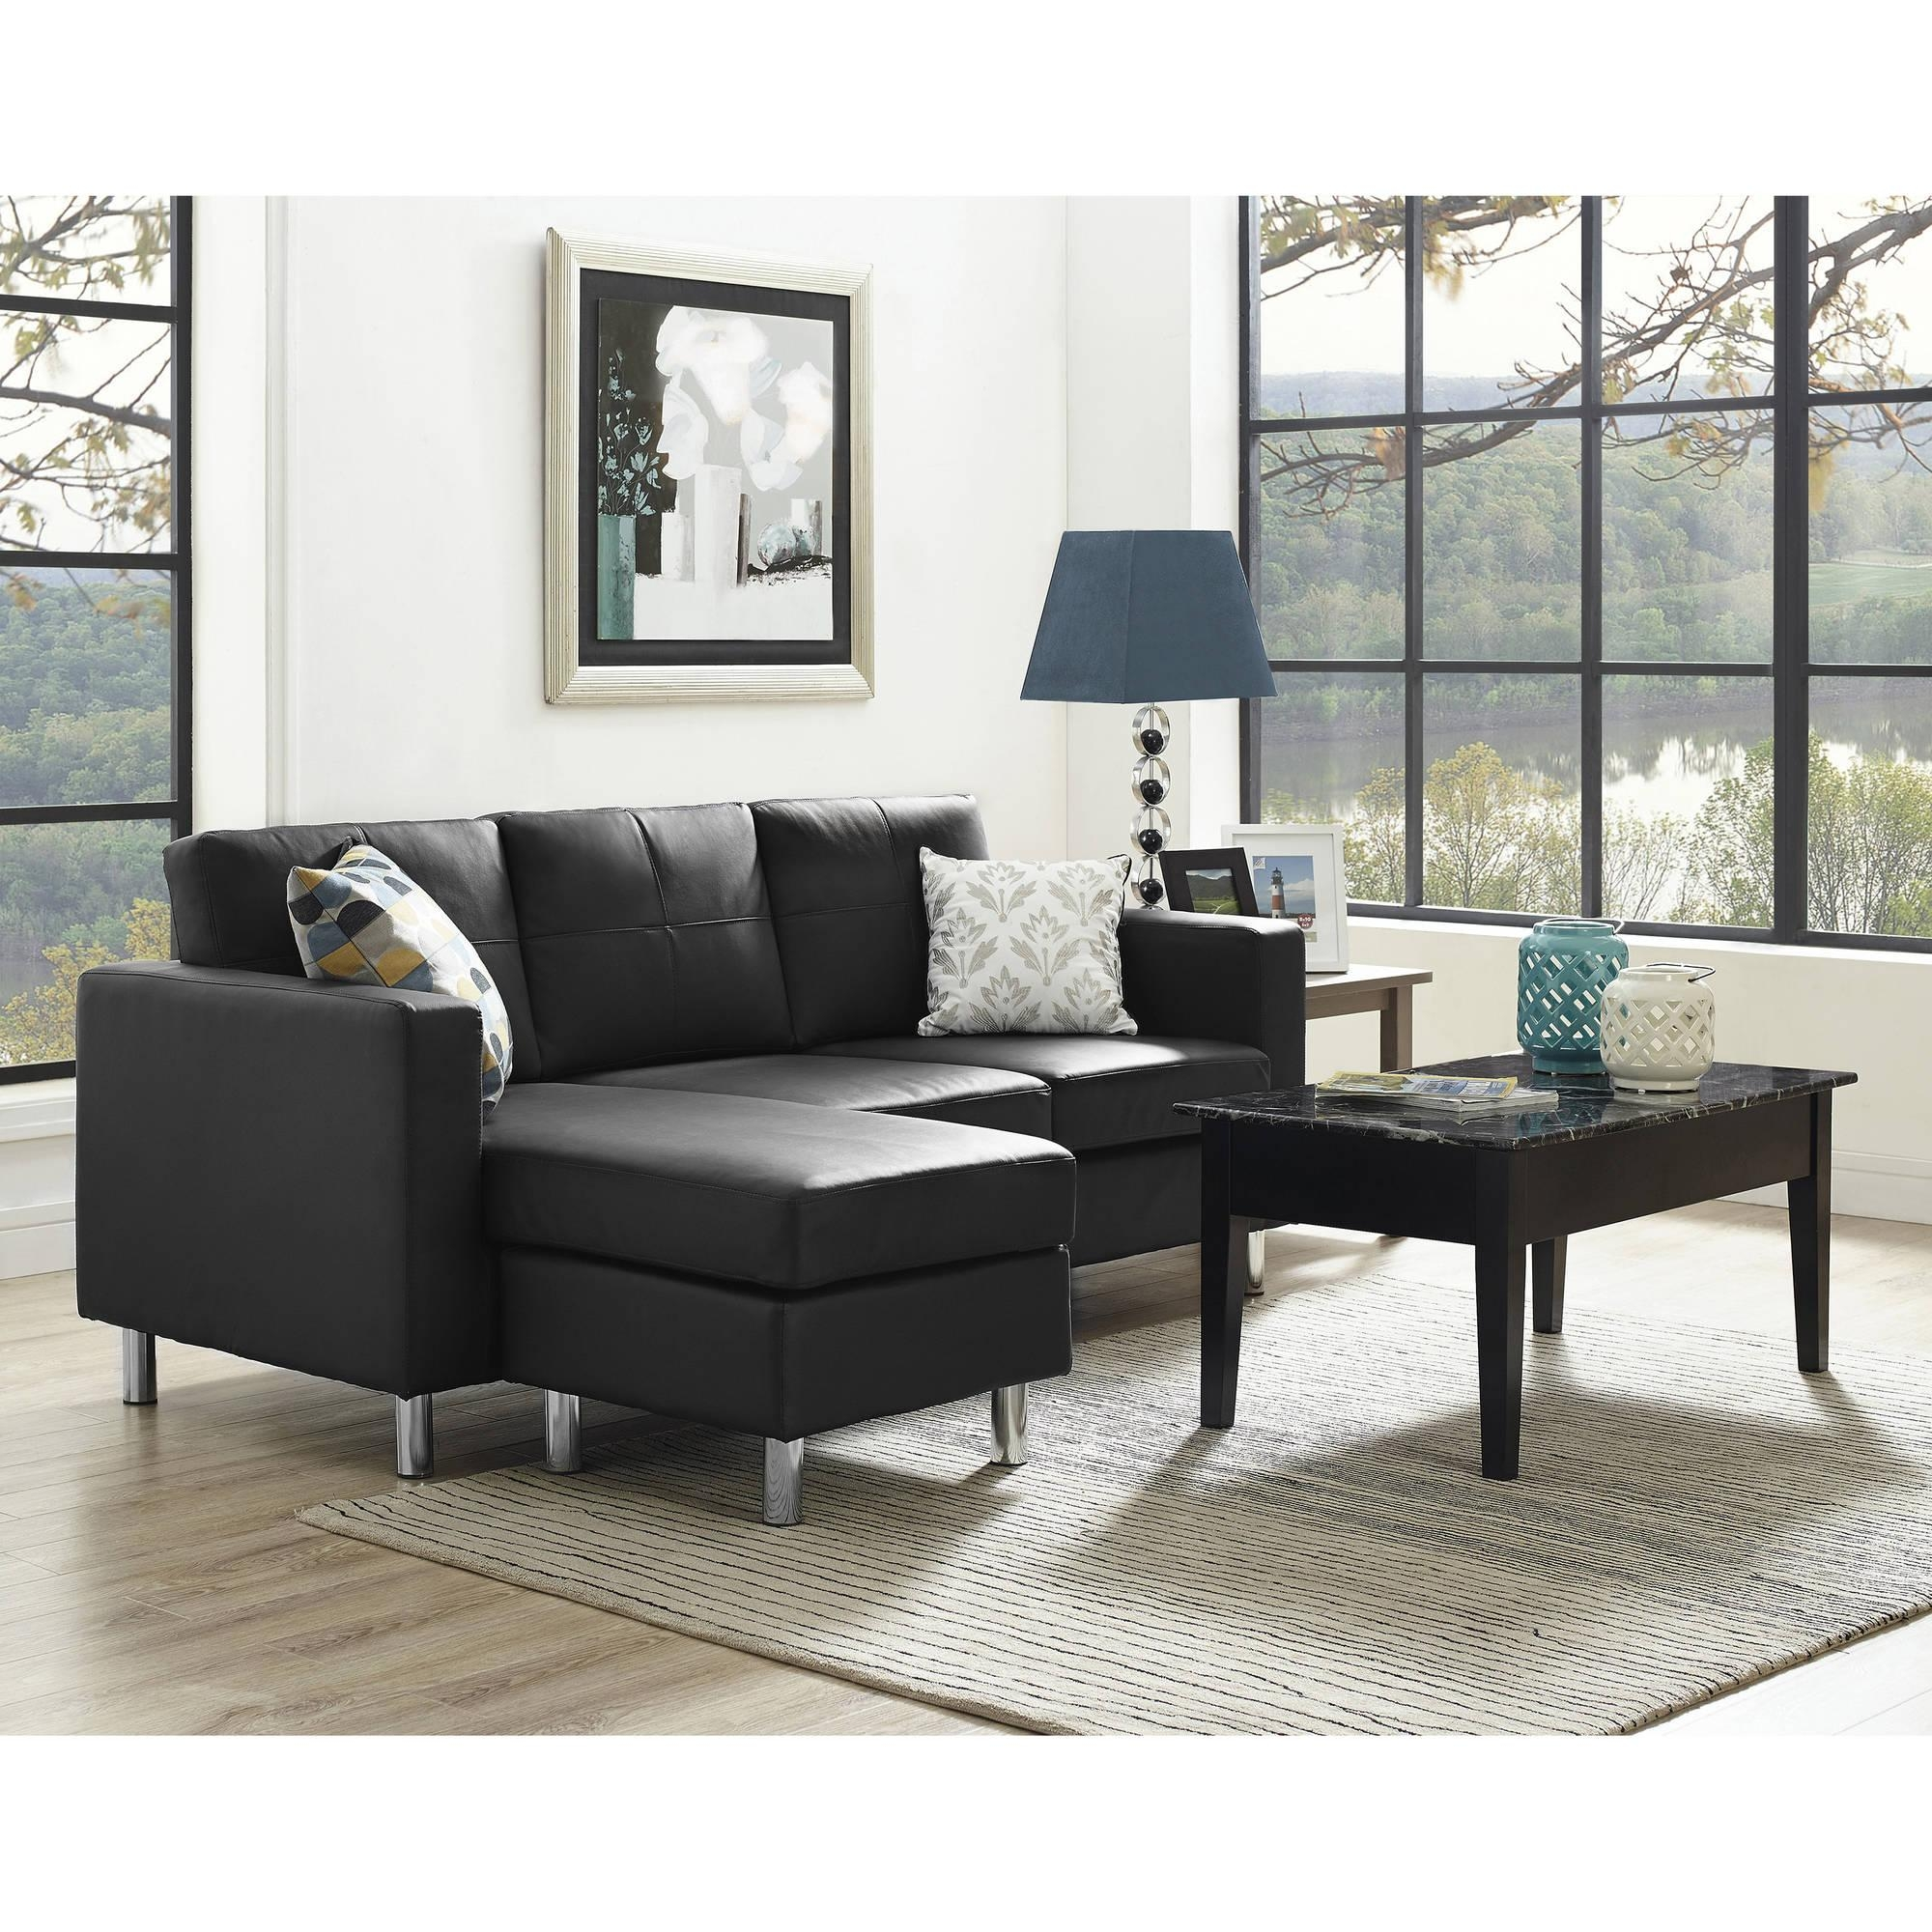 Dorel Living Small Spaces Configurable Sectional Sofa, Multiple In Small Lounge Sofas (View 12 of 20)